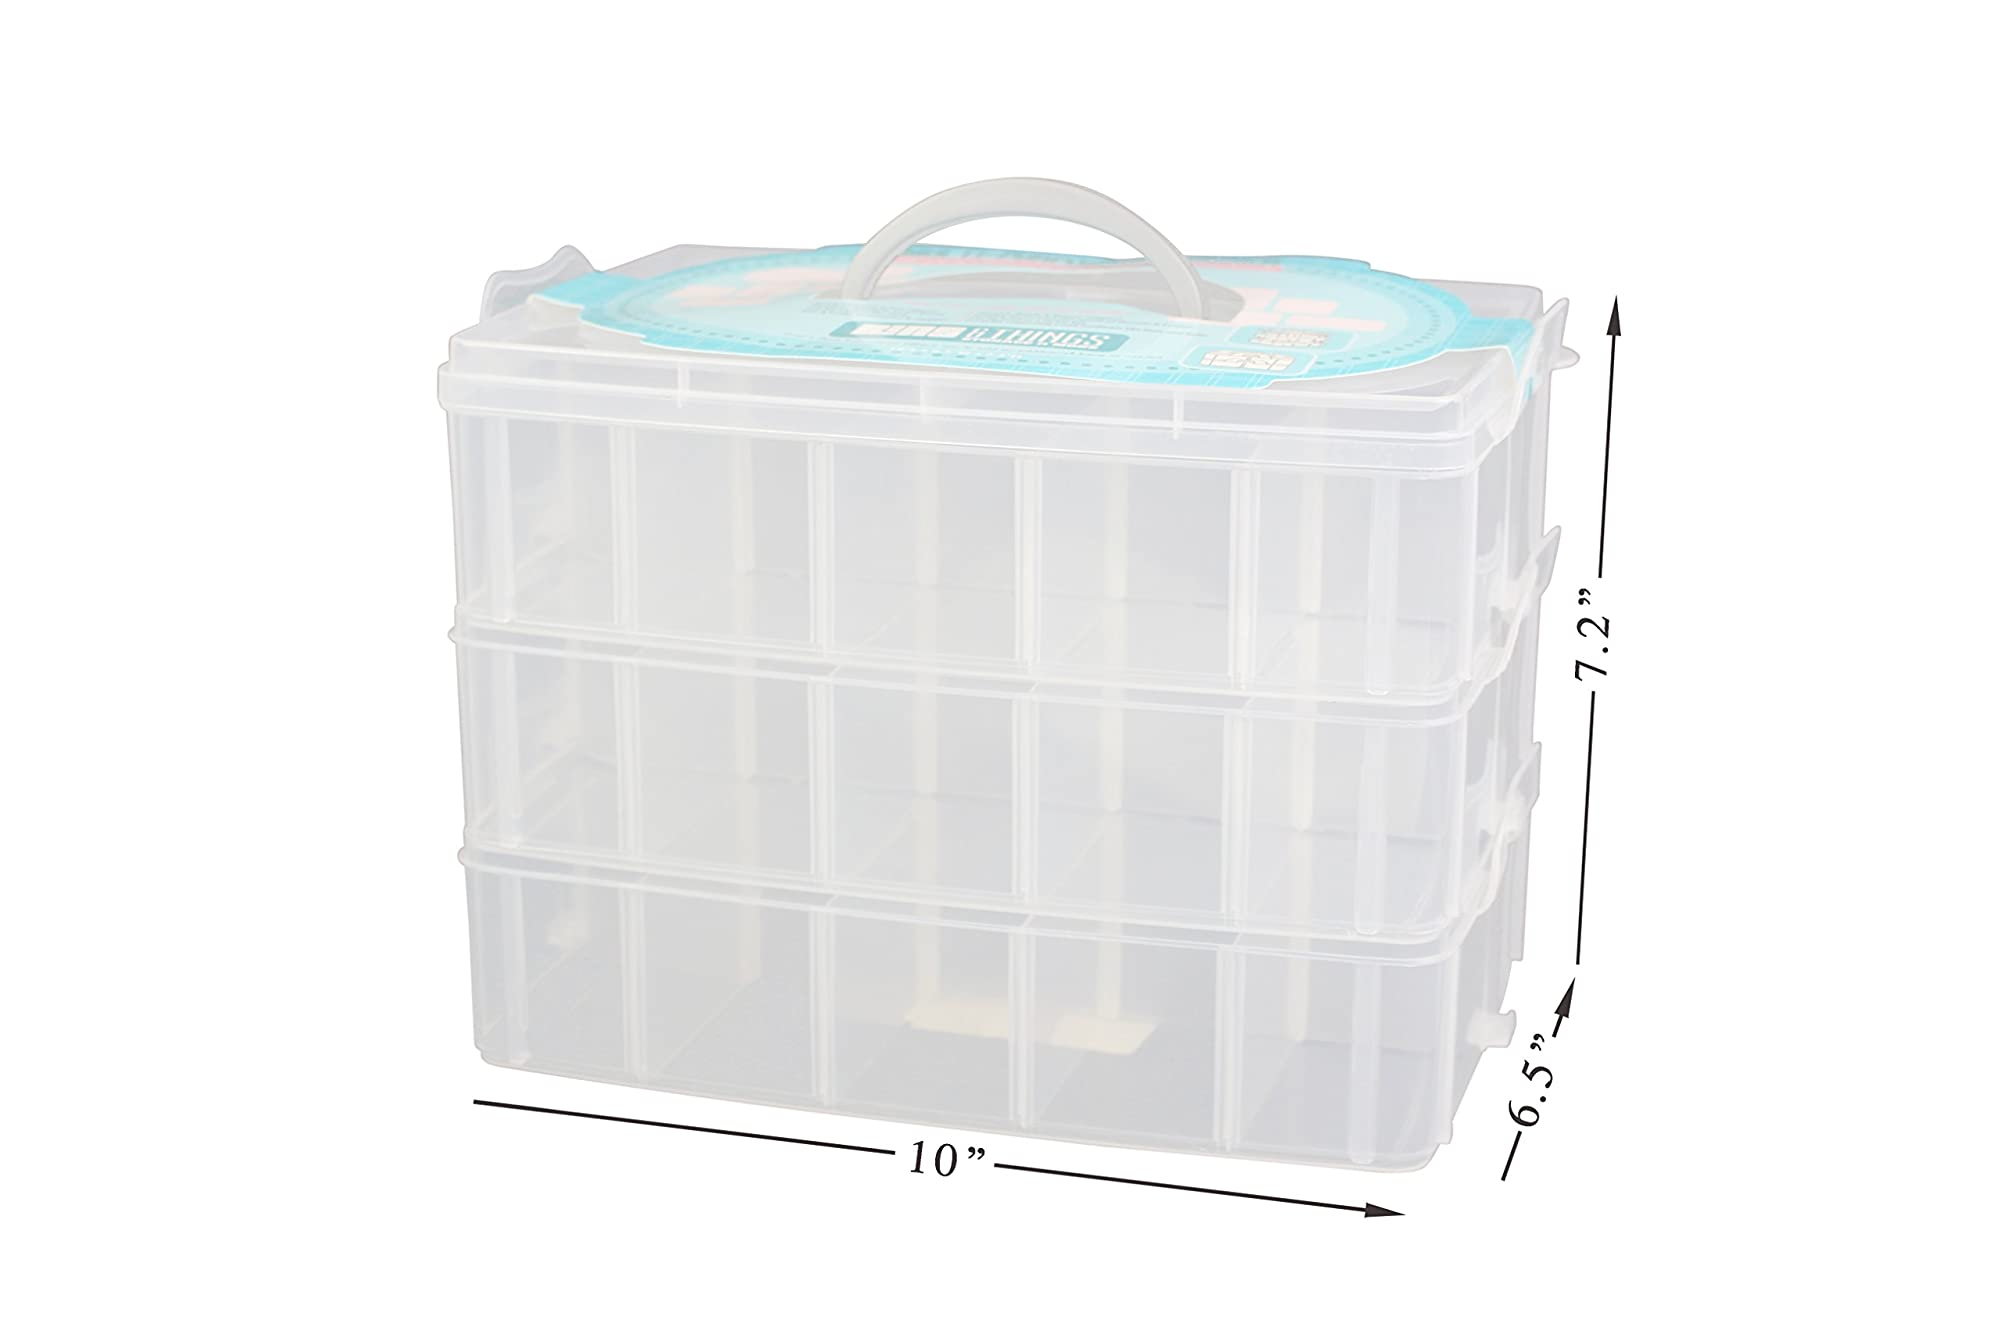 Multipurpose Storage Organizer With Adjustable Compartments